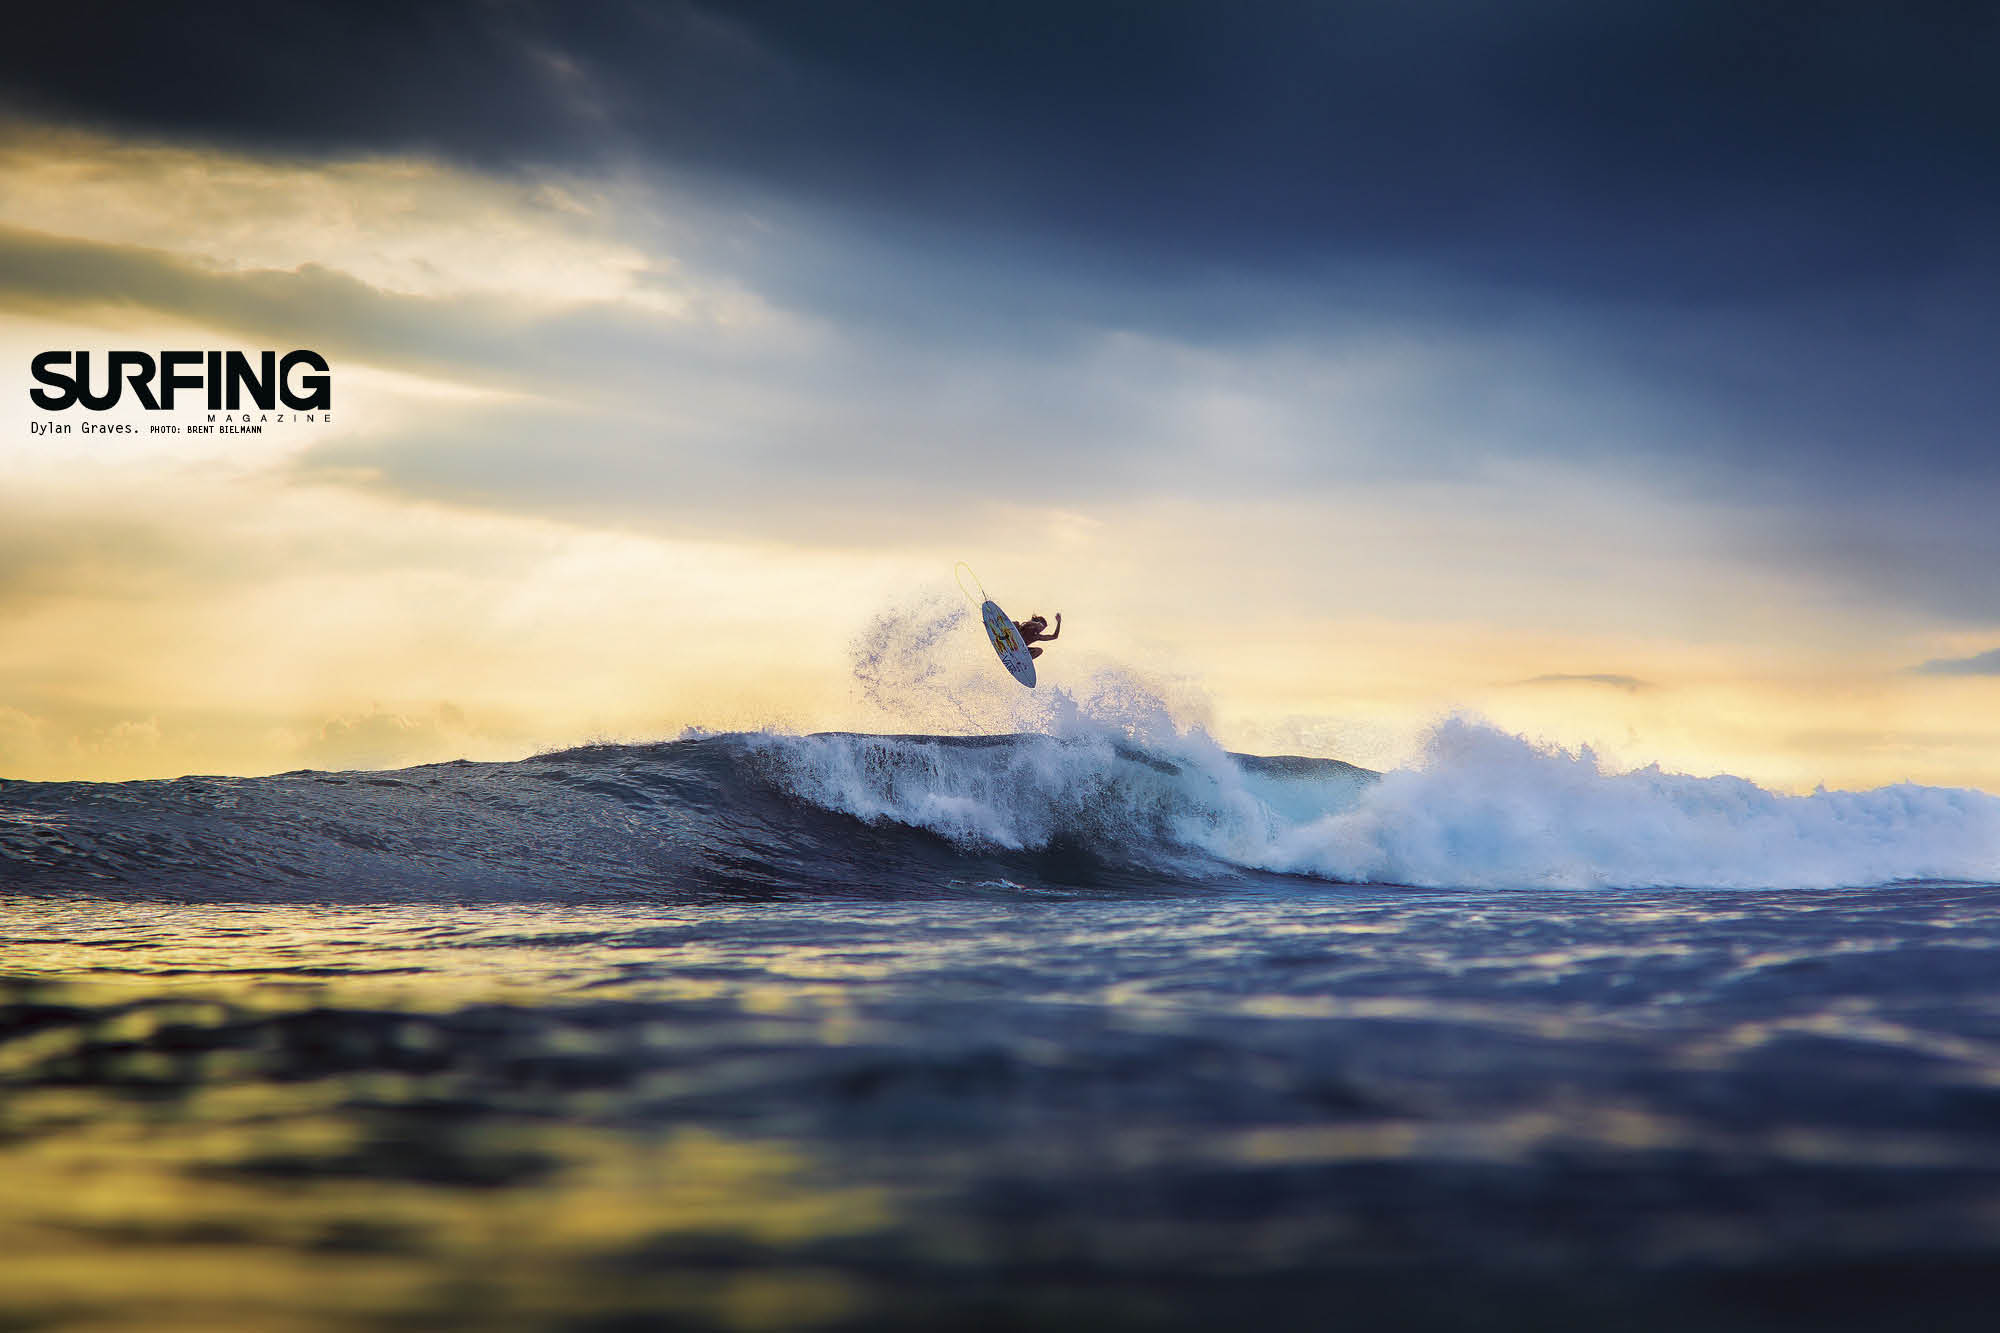 Surfing Magazine Wallpaper